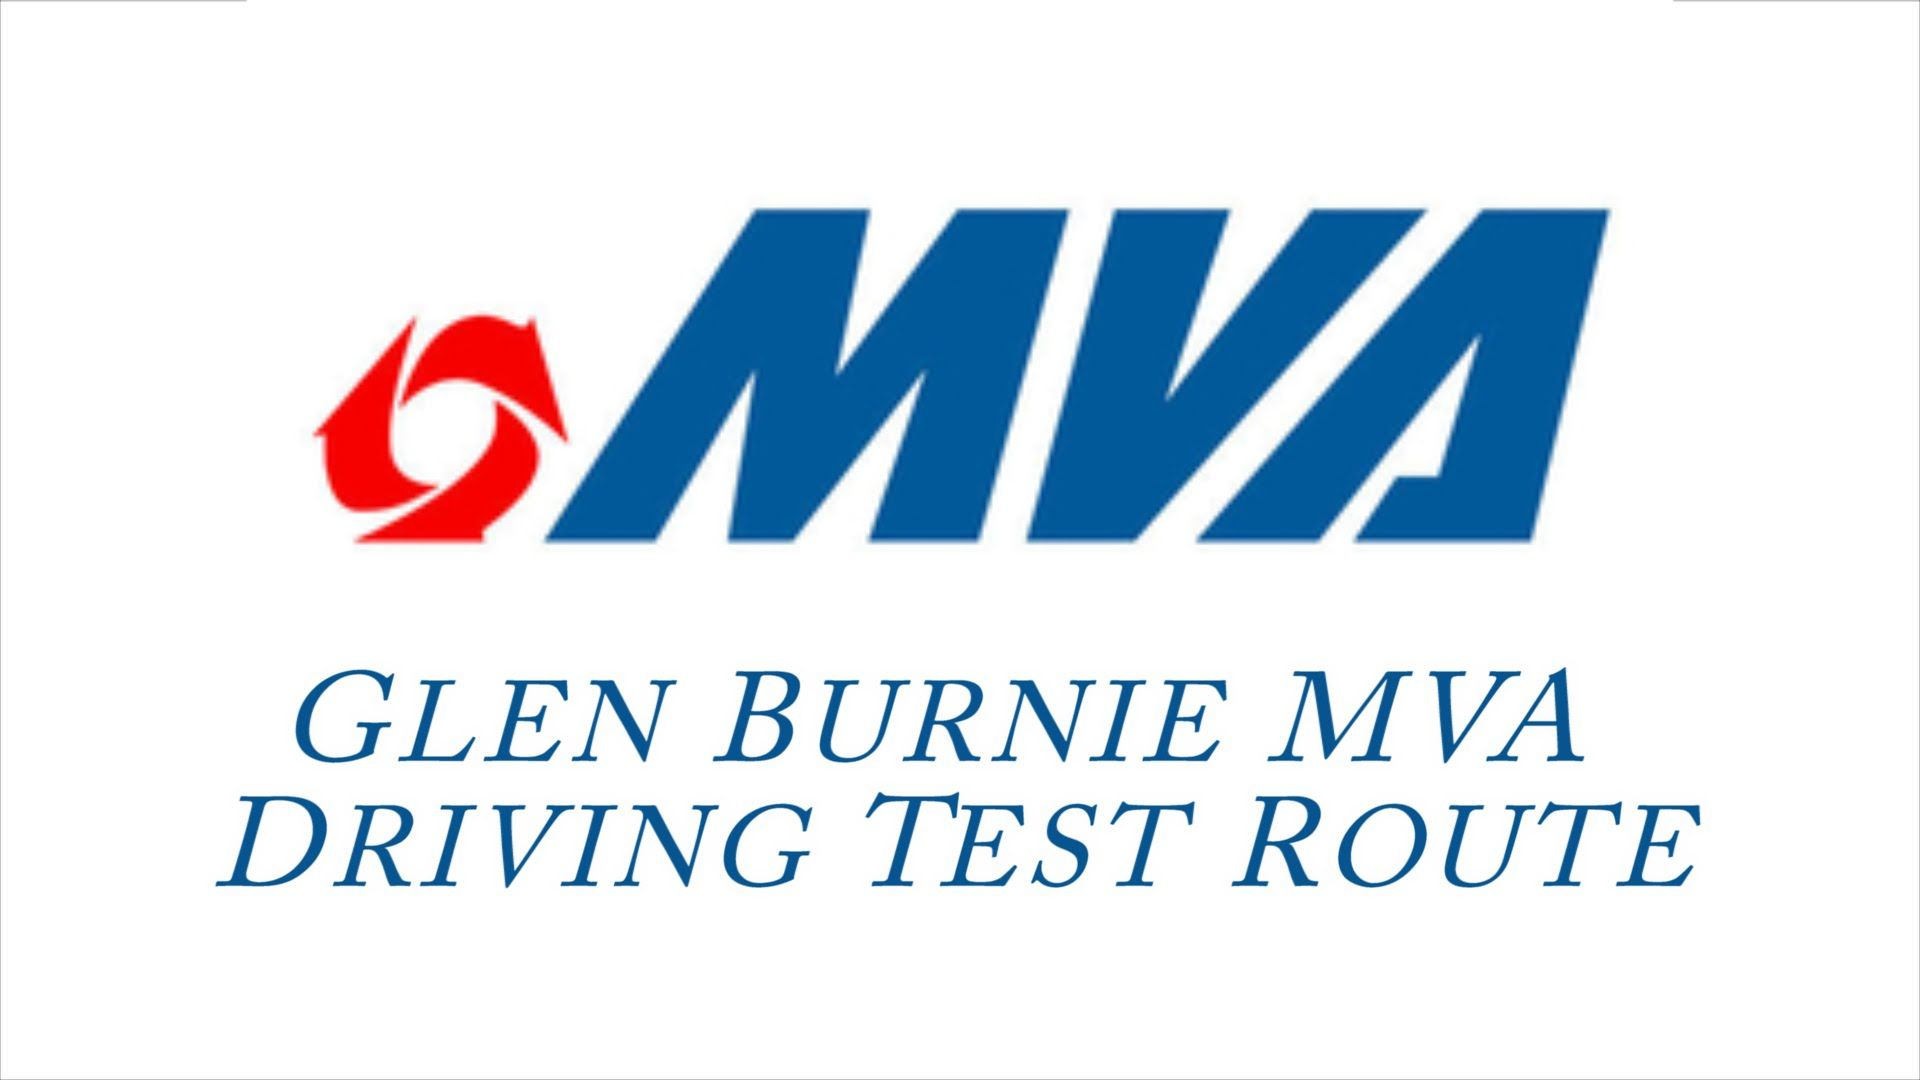 Pin on Maryland Driving Test Routes